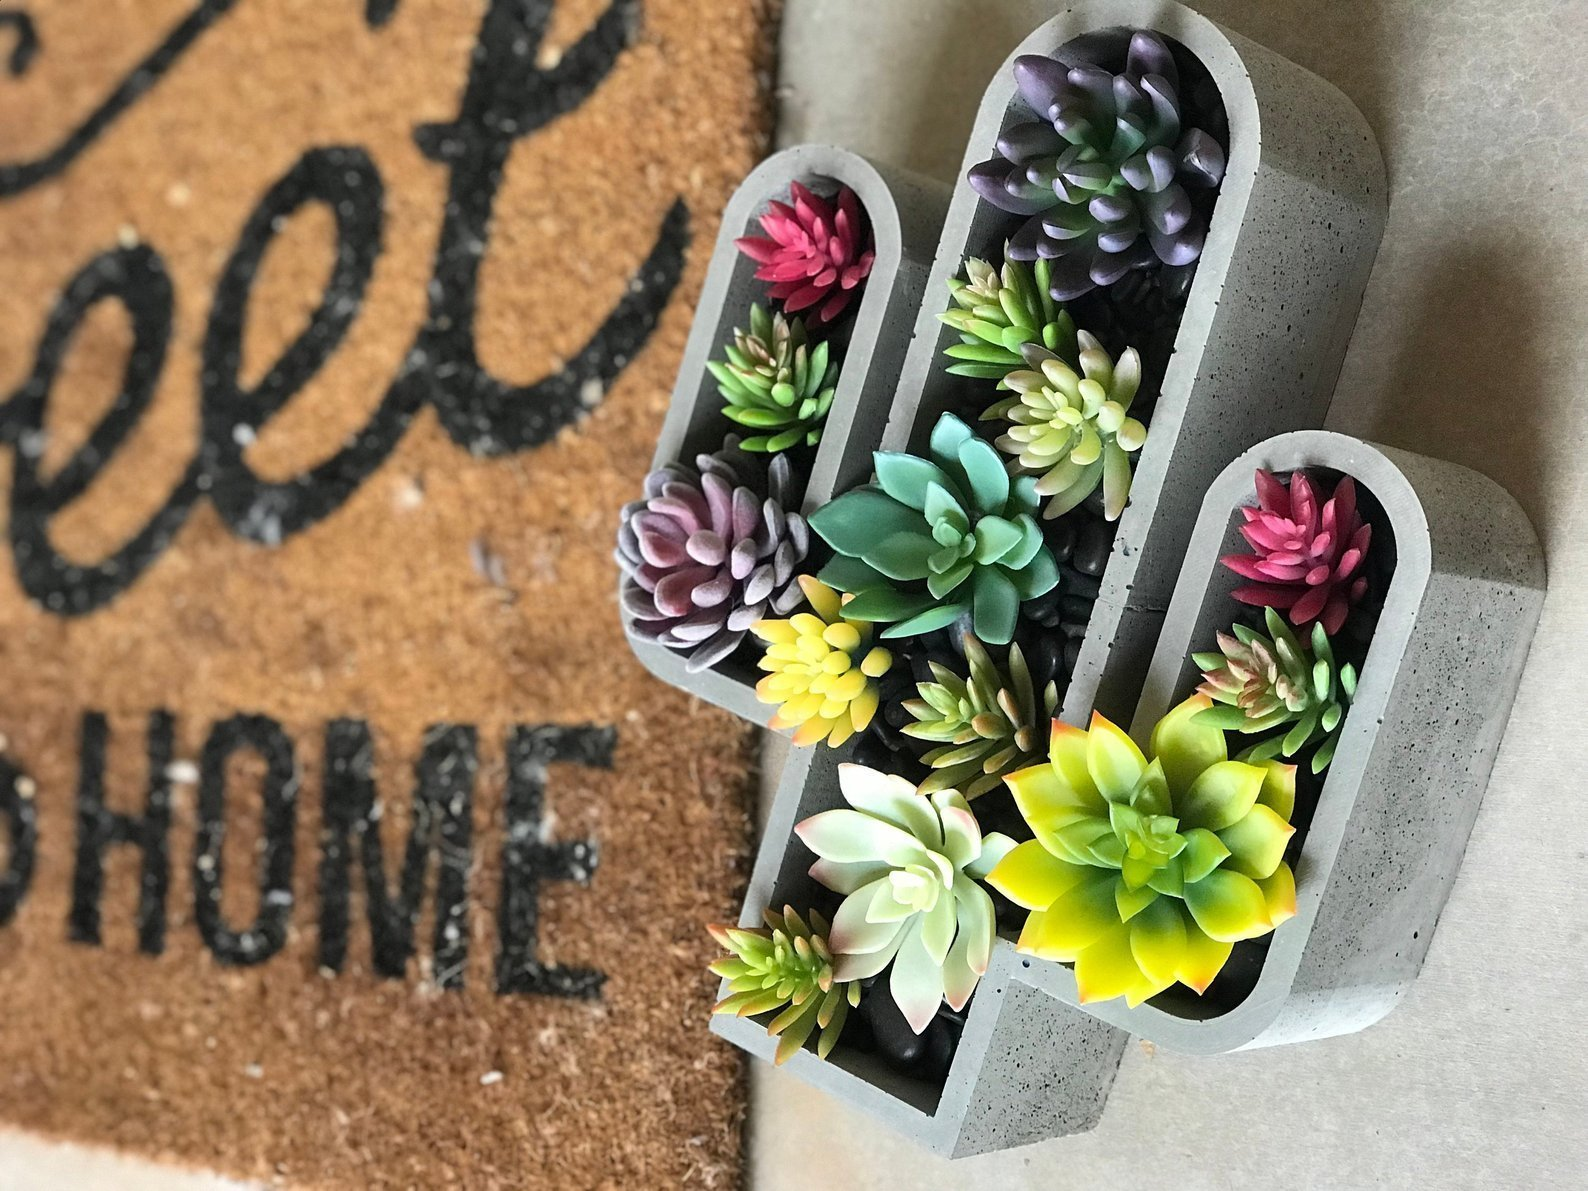 concrete planter in shape of cactus filled with succulents